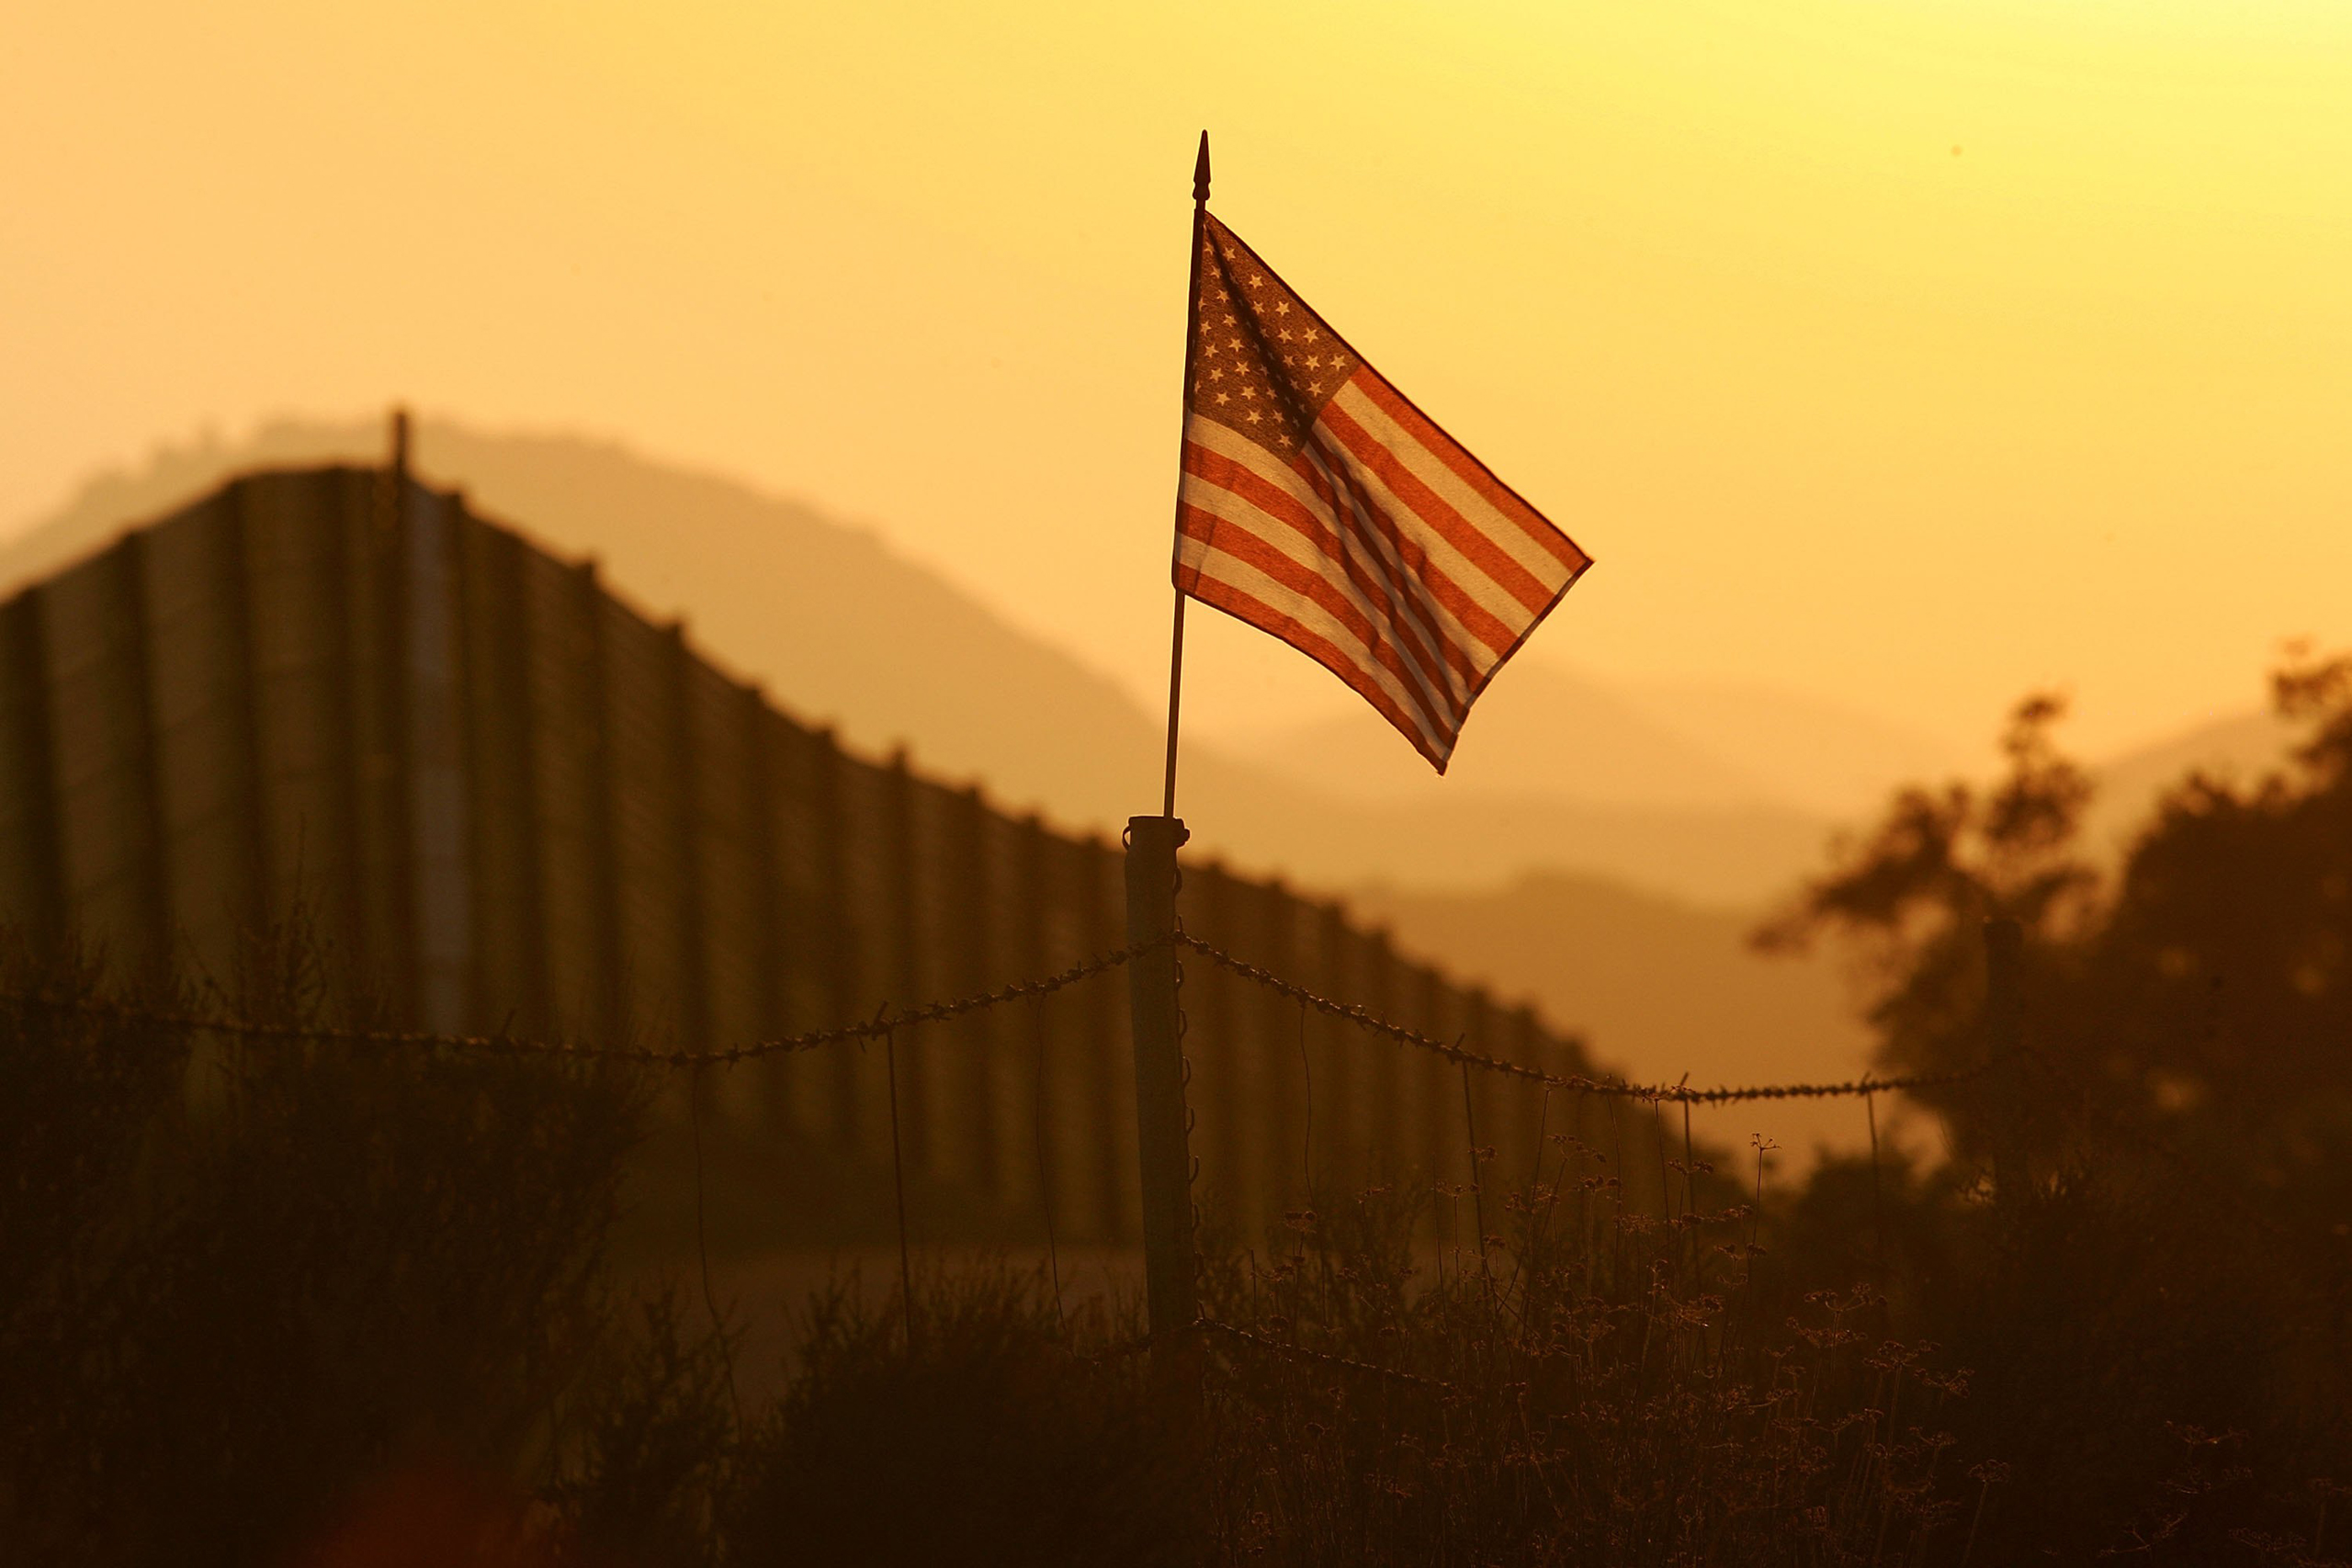 A U.S. flag put up by activists who oppose illegal immigration flies near the US-Mexico border fence near Campo, California, on Oct. 8, 2006.